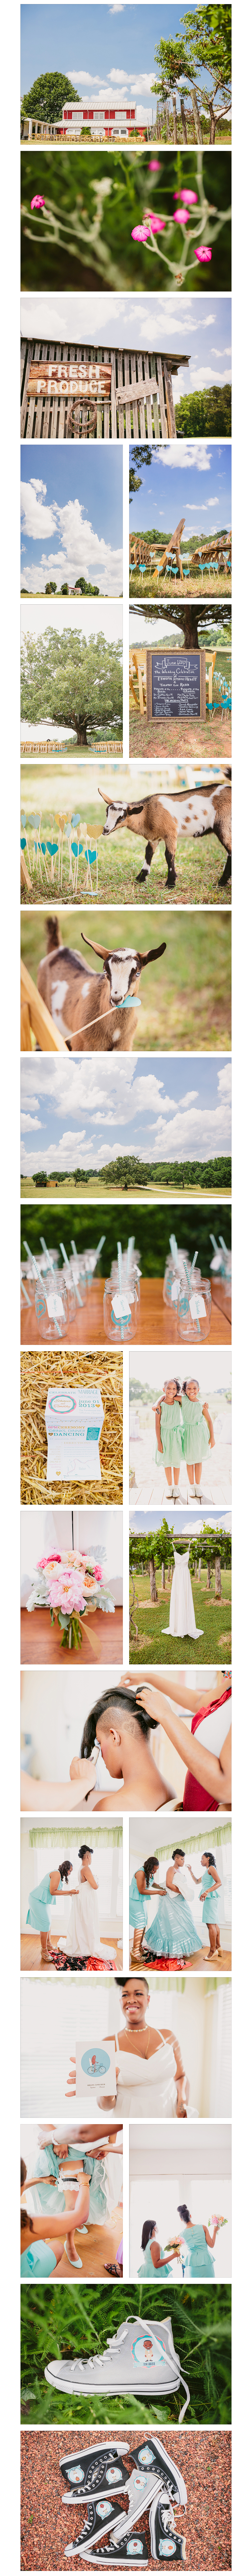 atlanta-farm-wedding-1.jpg